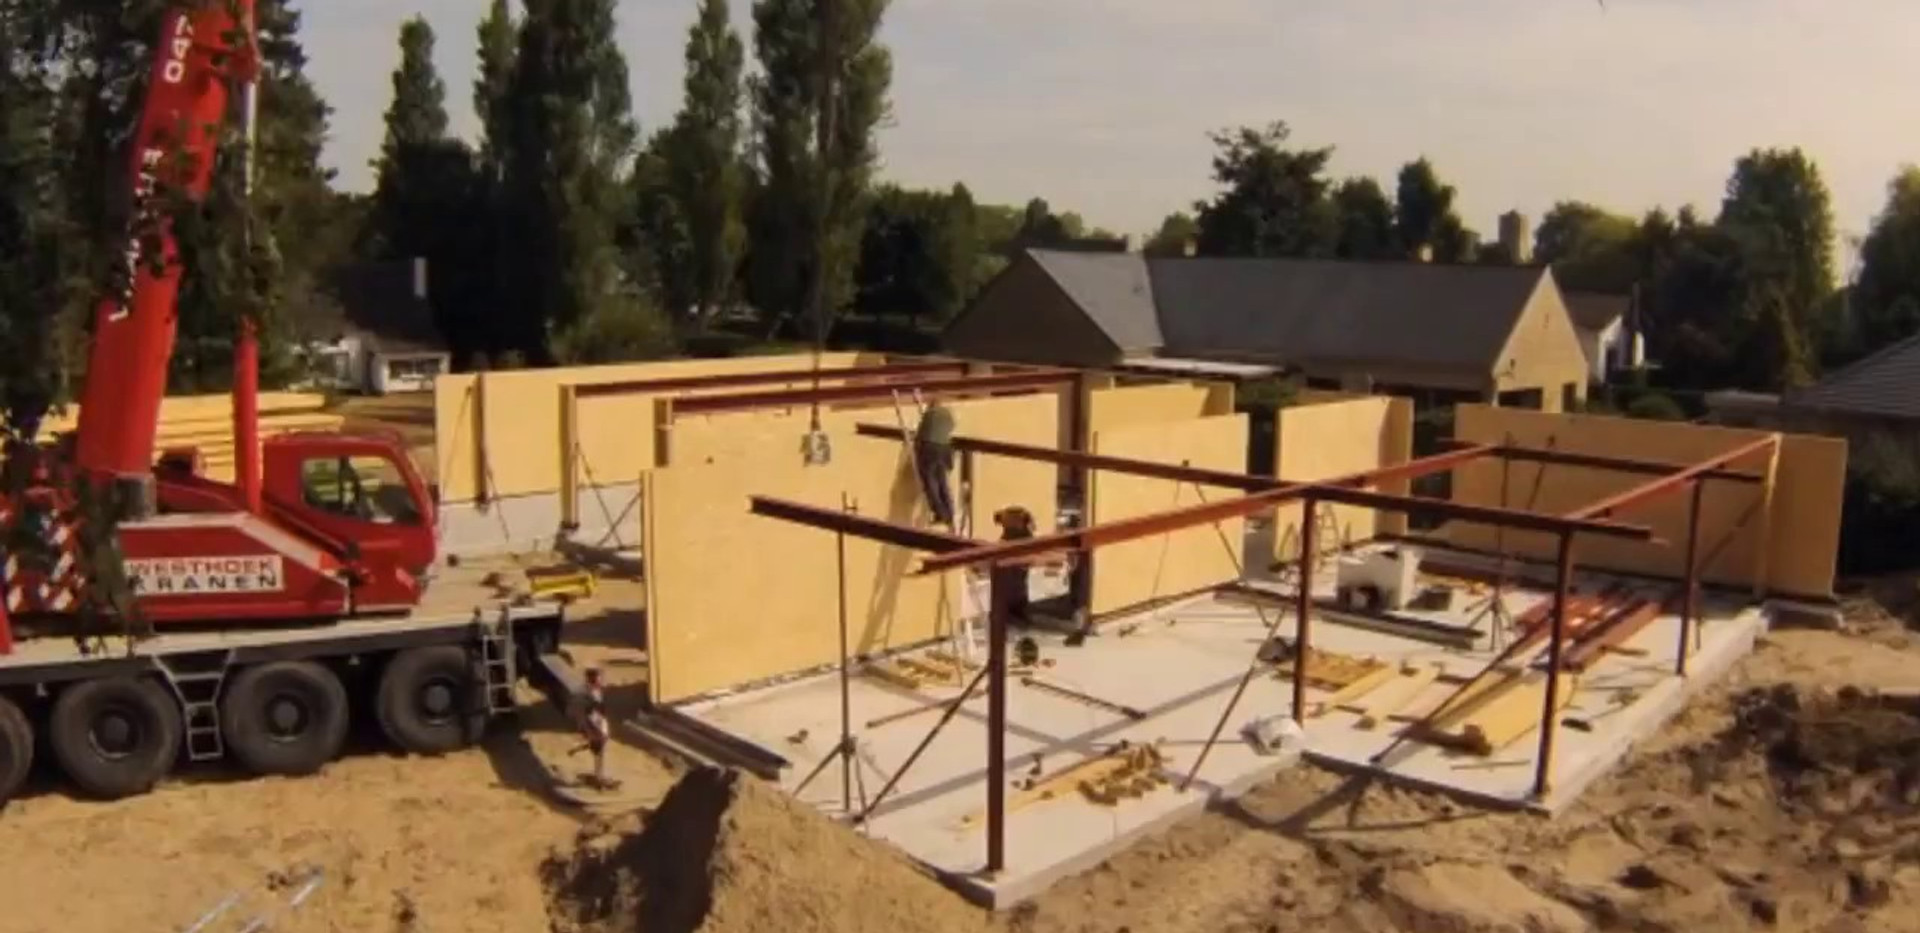 Wood & Build - Realisatie in Magnumboard - Oostduinkerke - Tilleman